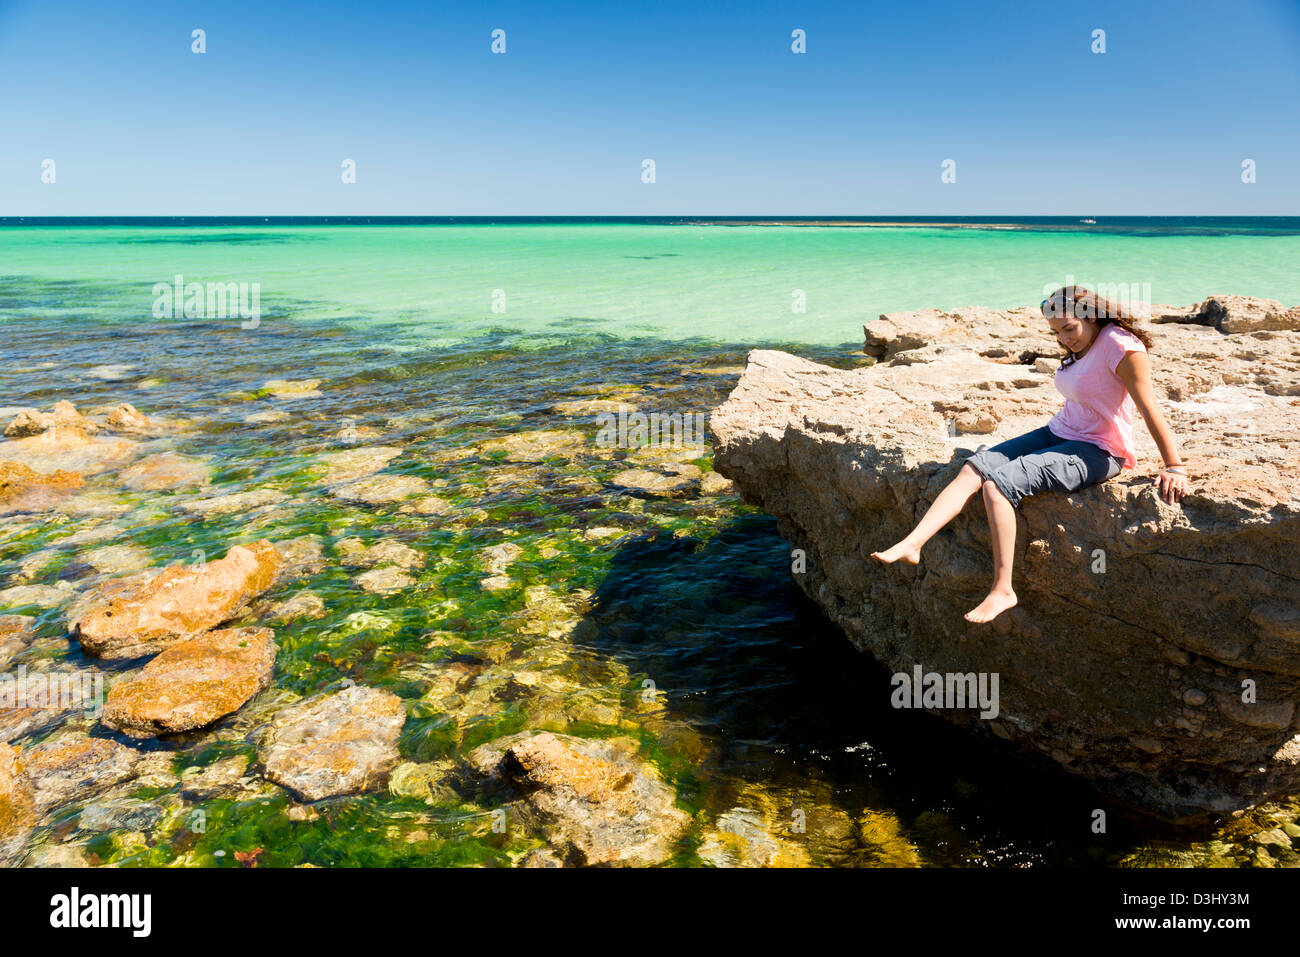 Young woman tourist enjoys the amazing water and rocks - Stock Image